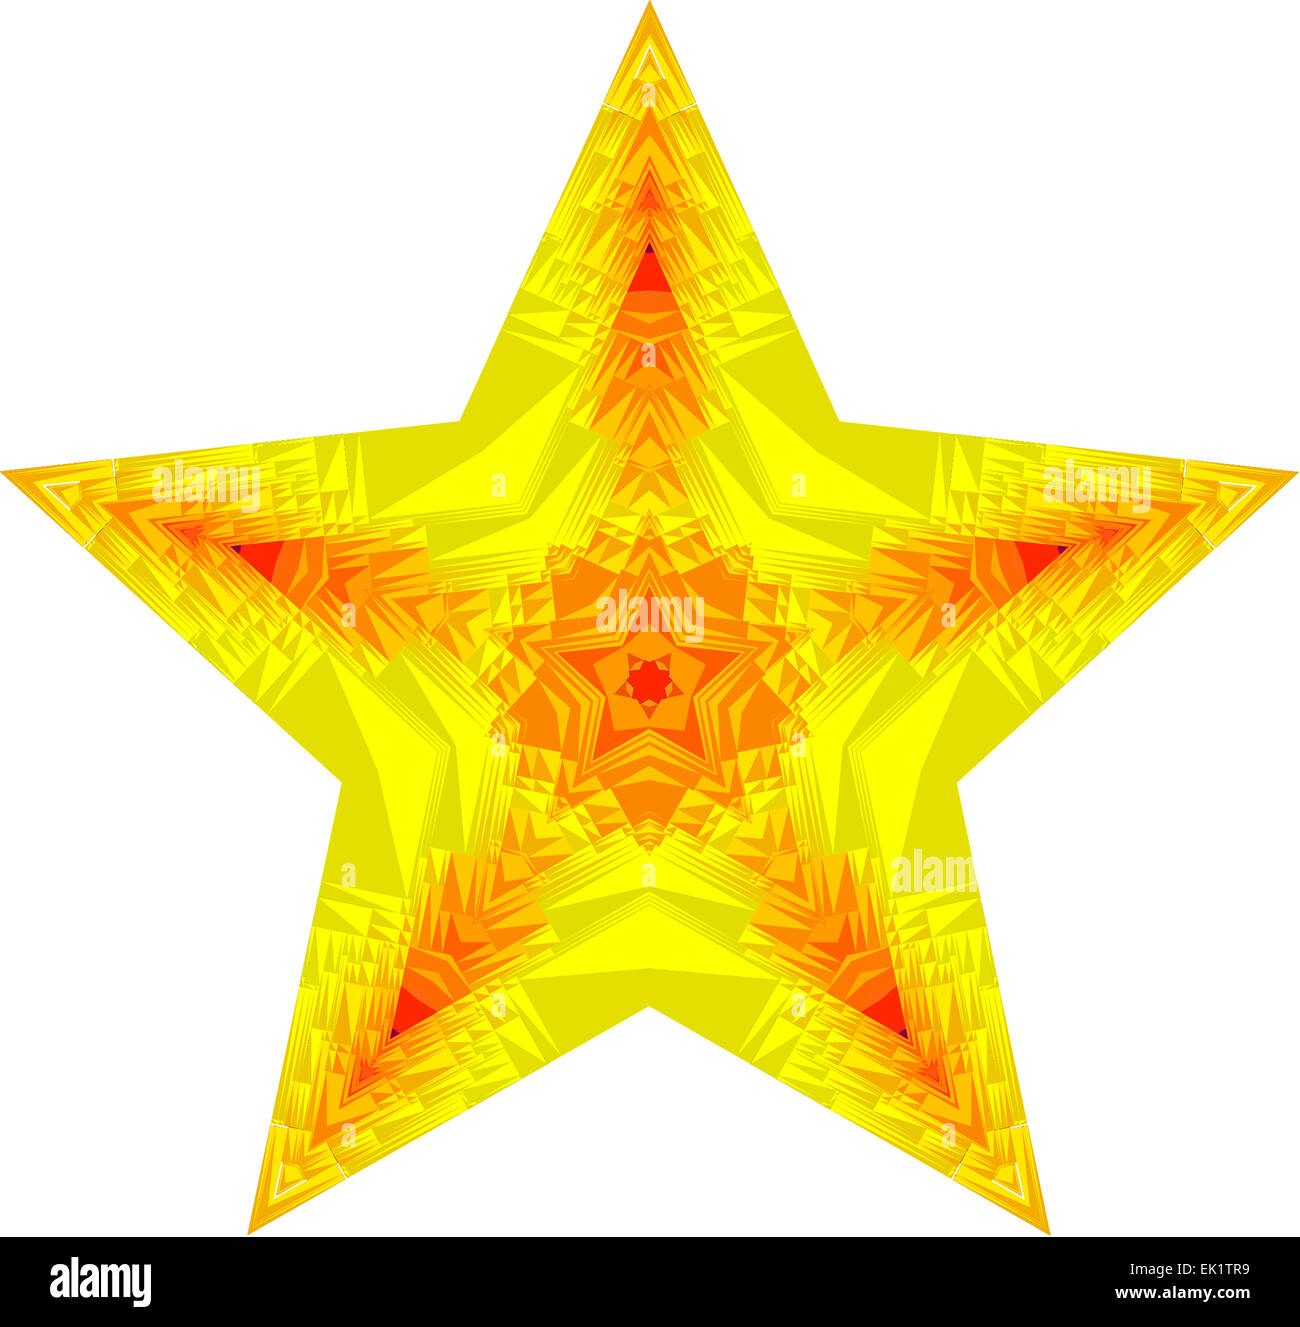 Mandala Star Symbol Showing 5 Points In Shades Of Yellow Red And